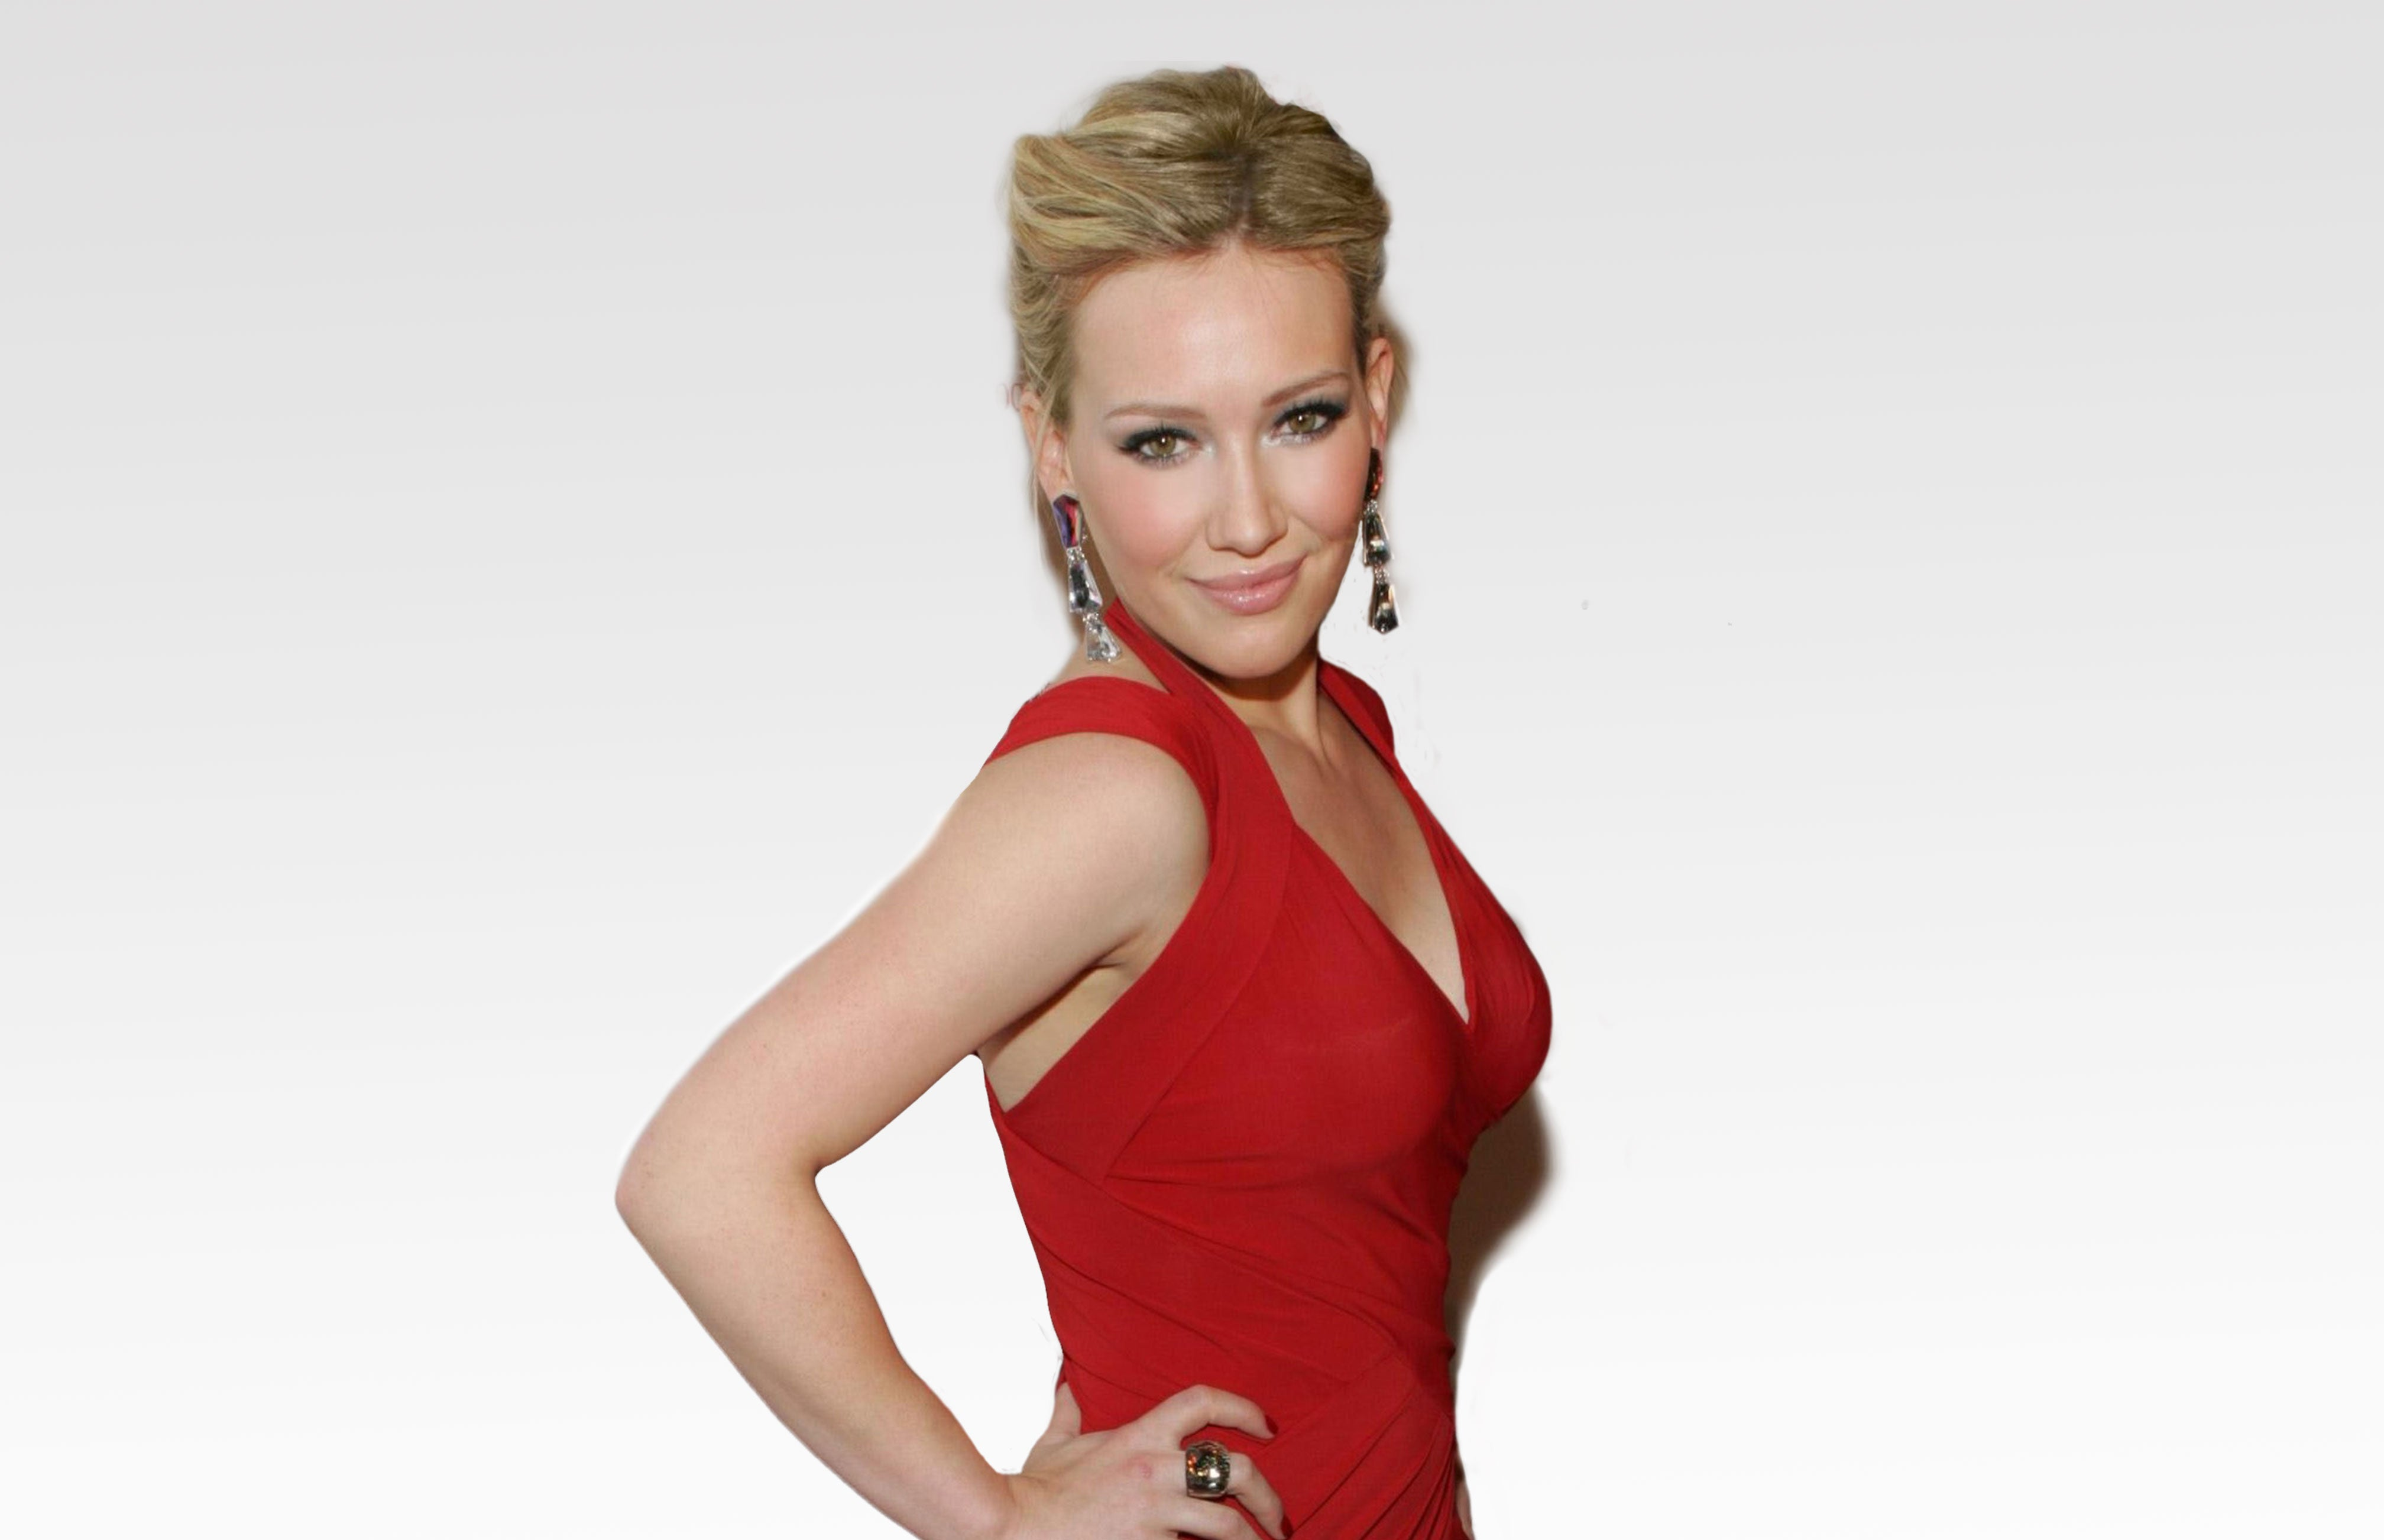 image of Hillary Duff wearing a red halter top dress posing in front of white back drop